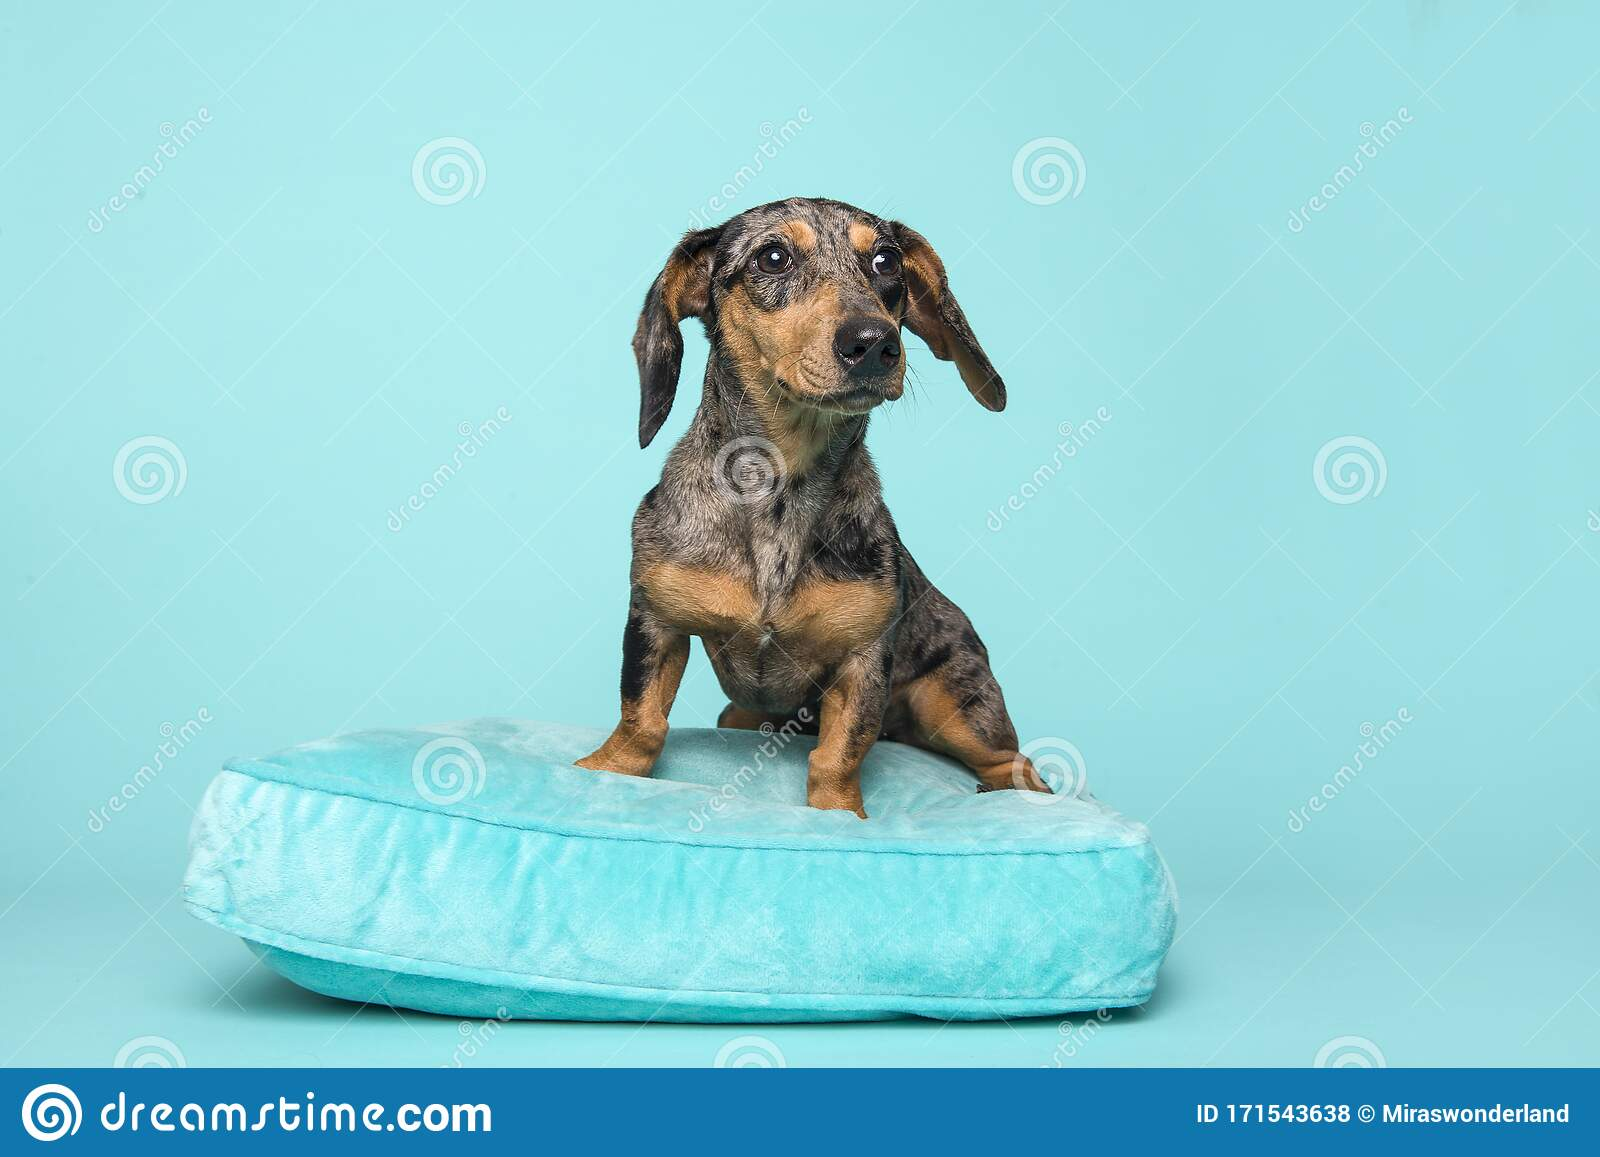 Cute Dachshund Puppy On A Blue Cushion On A Blue Background Stock Photo Image Of Shot Studio 171543638